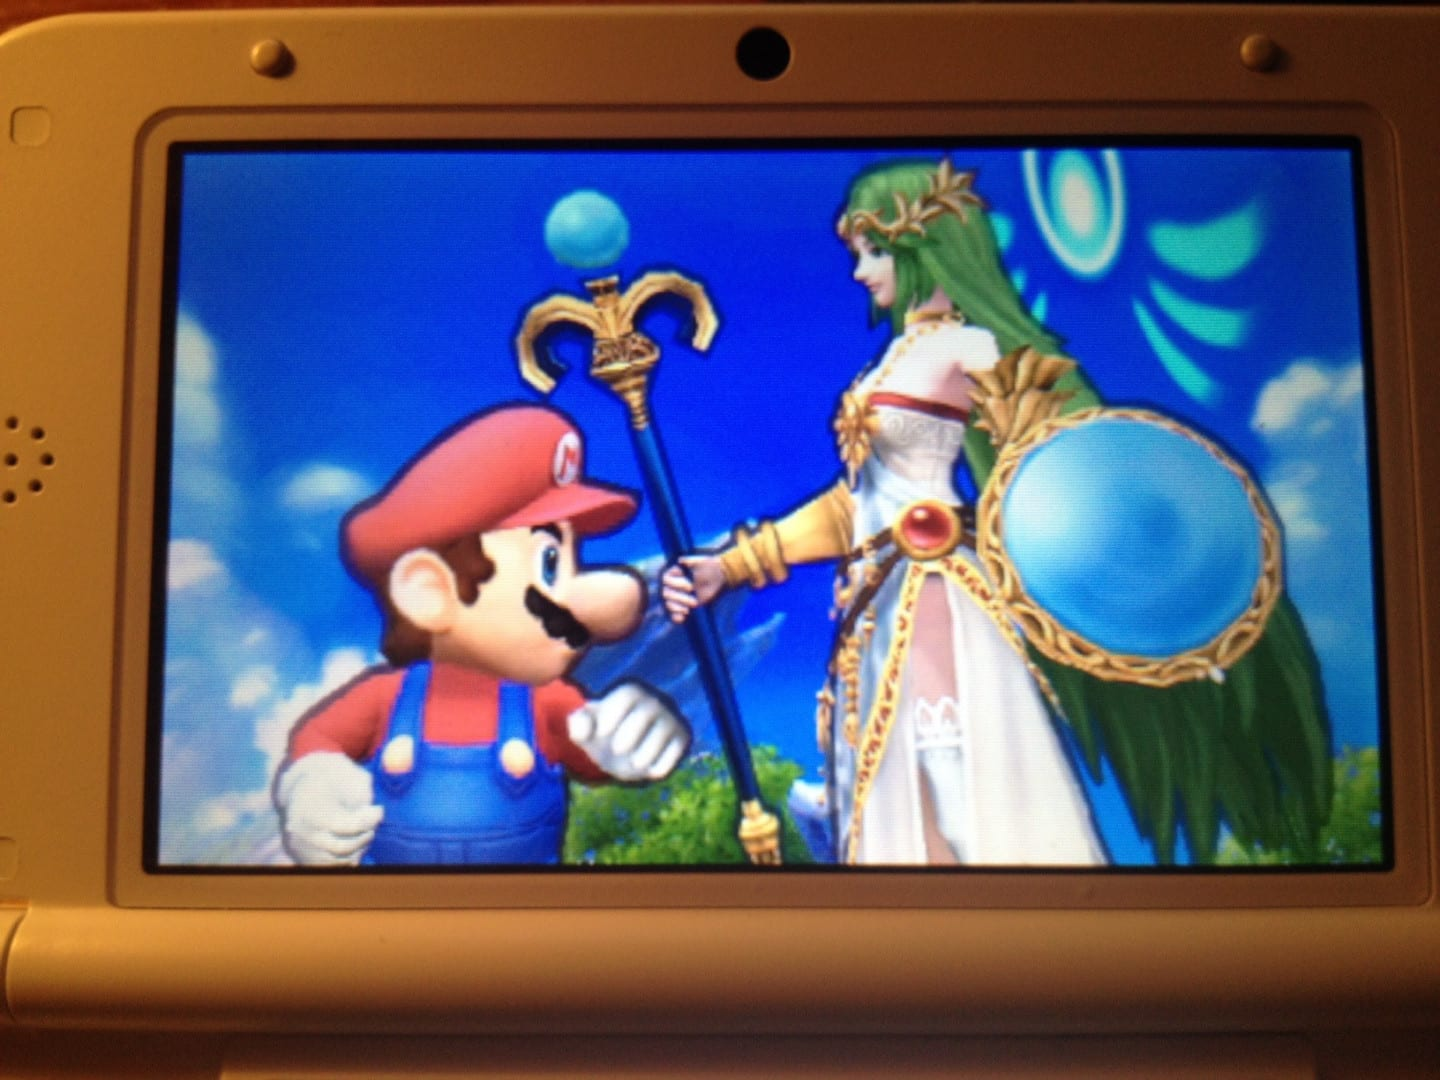 Mario and Palutena